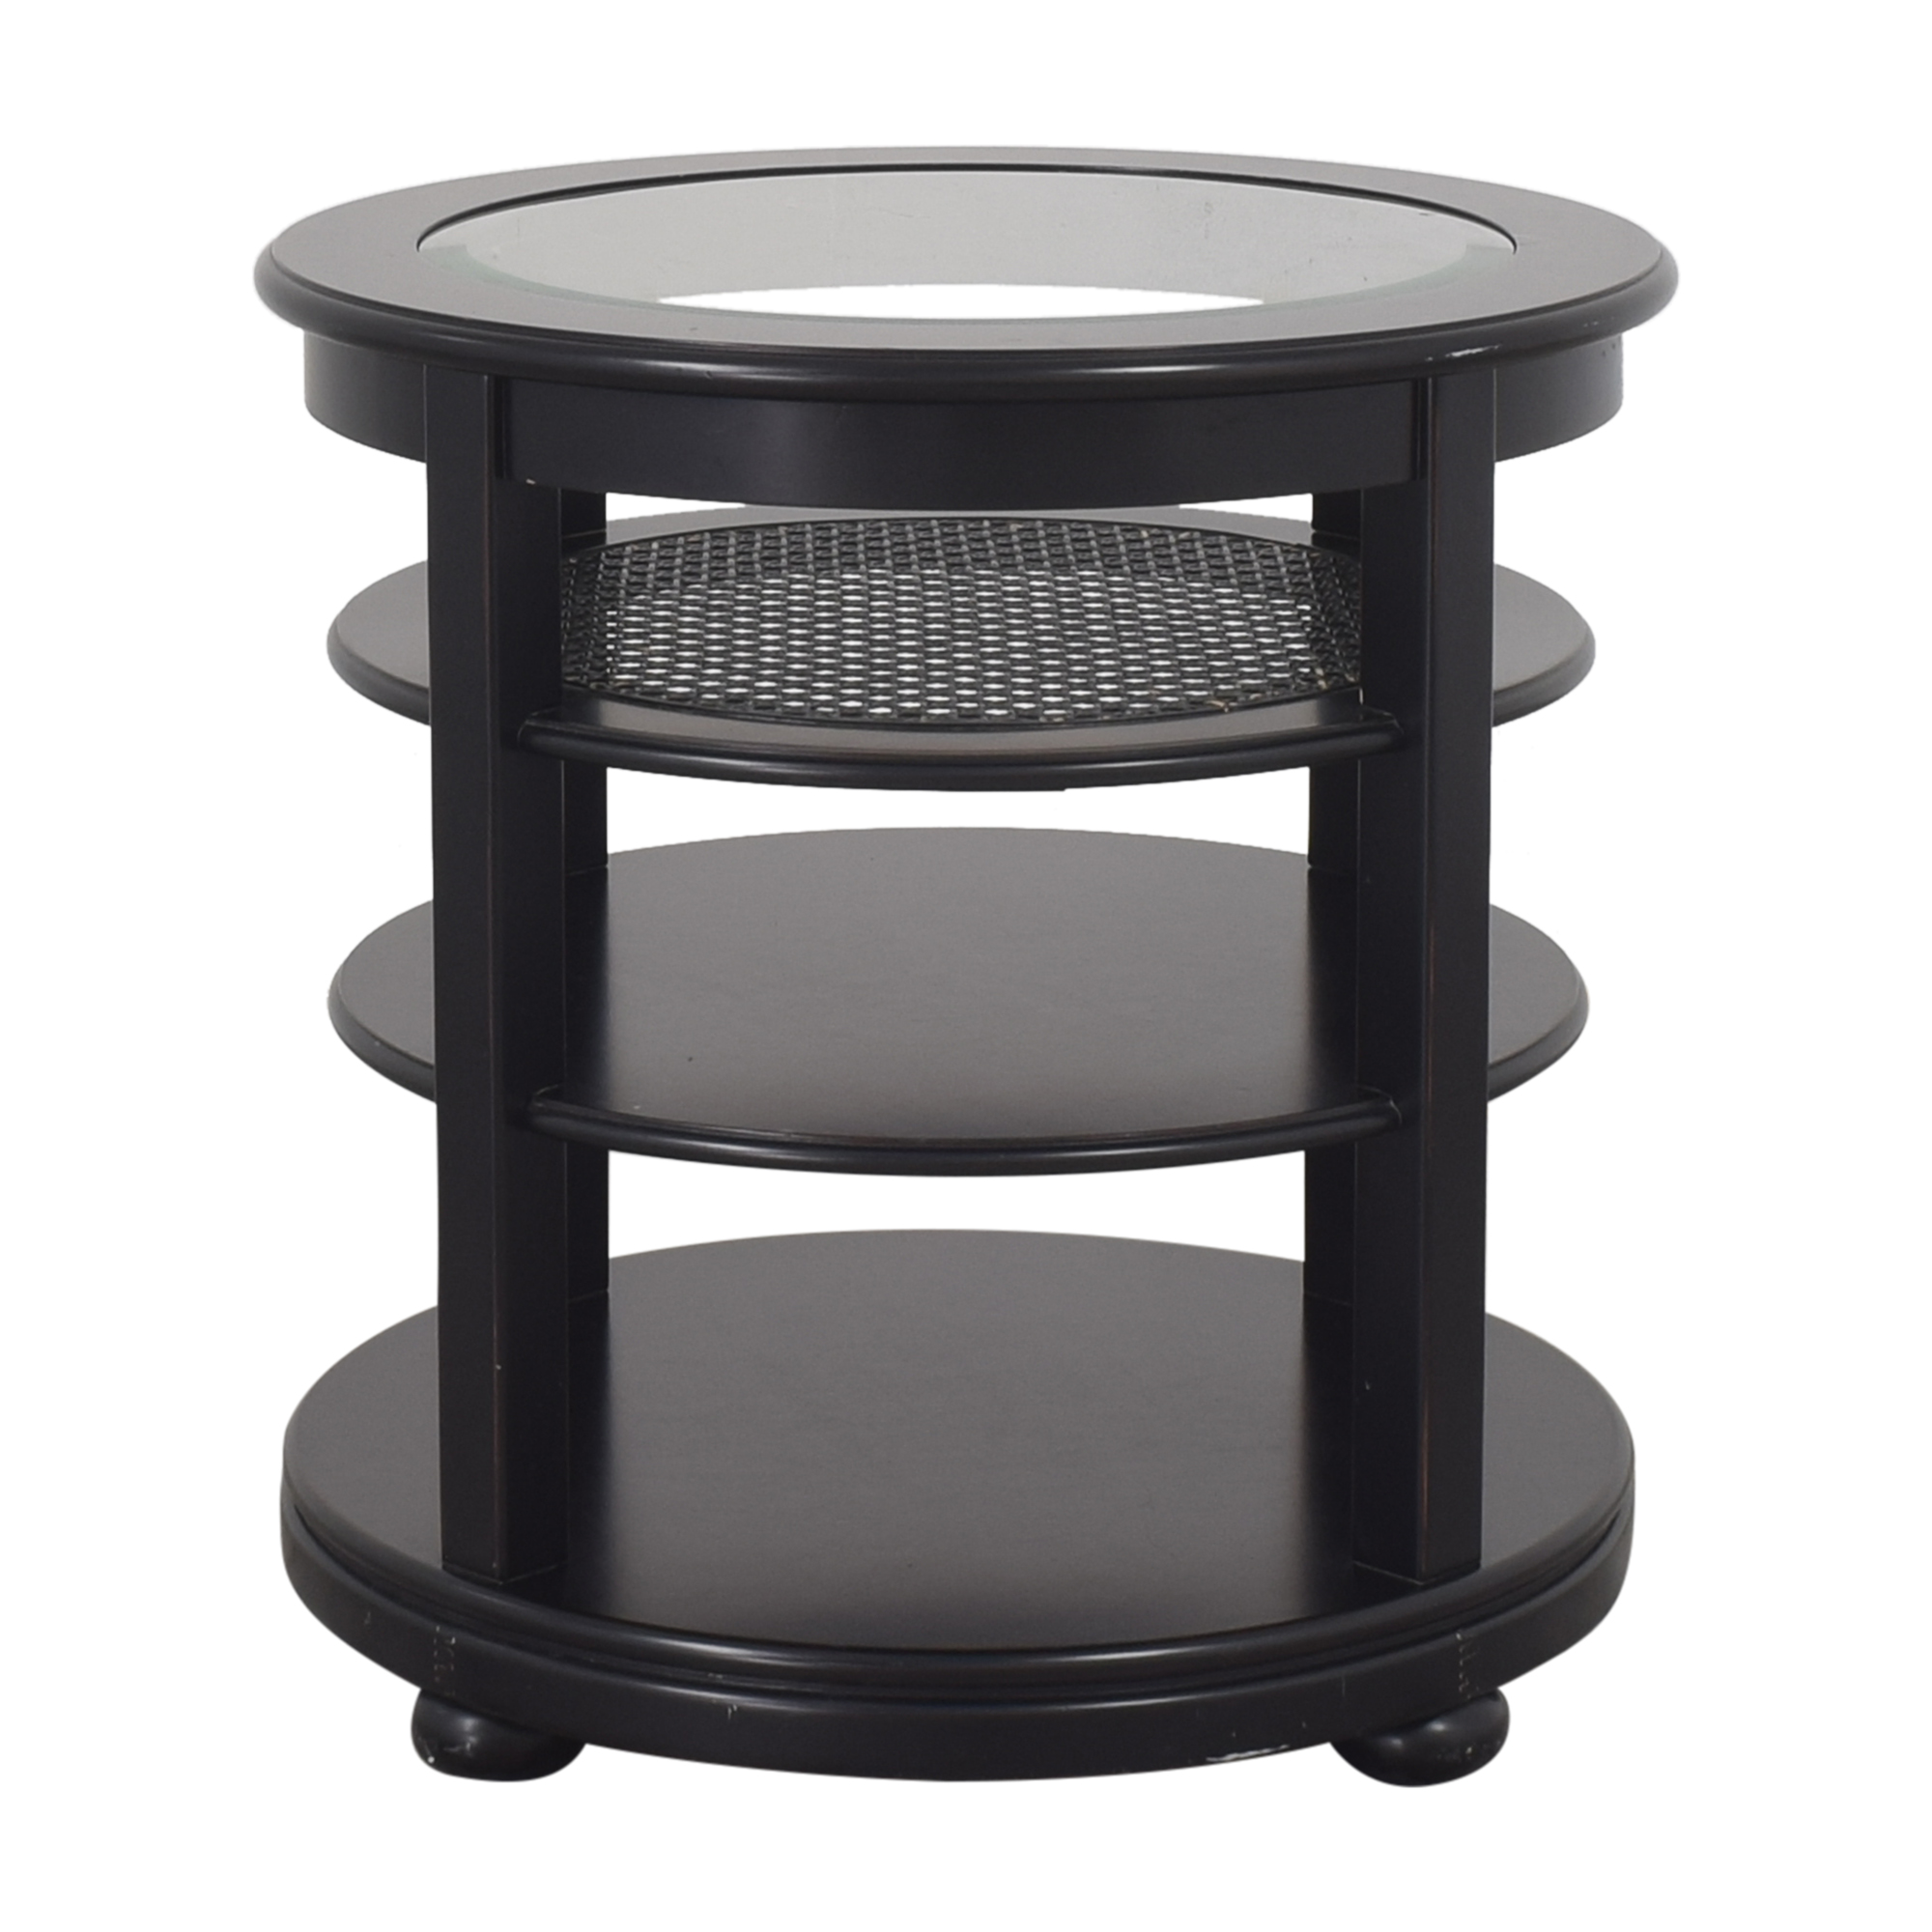 Stanley Furniture Stanley Round Tiered End Table nj